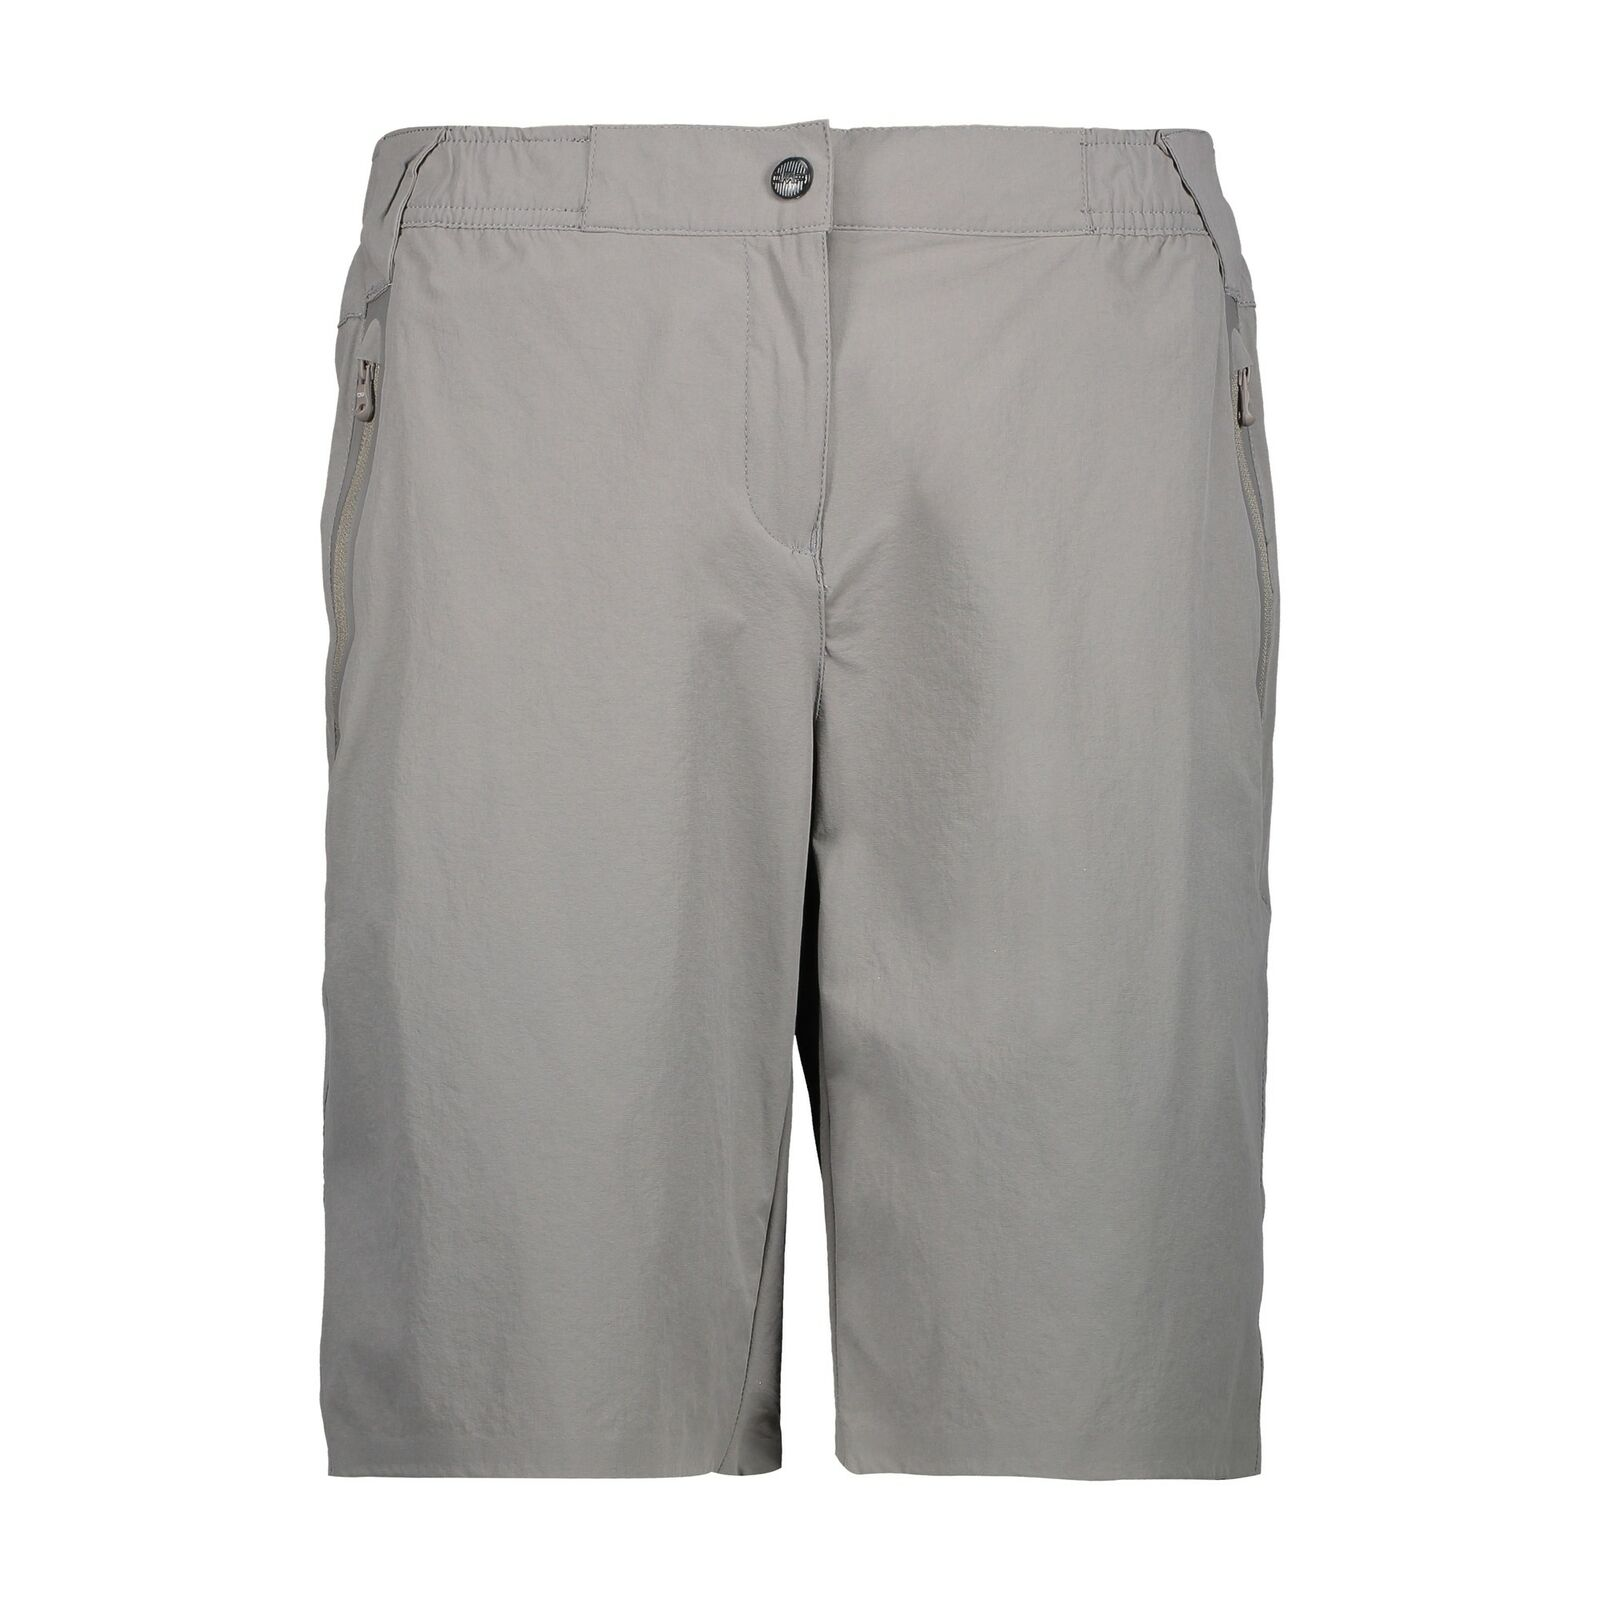 CMP Multisport Shorts Woman Bermuda  Grey Elastic uv Predection  all in high quality and low price